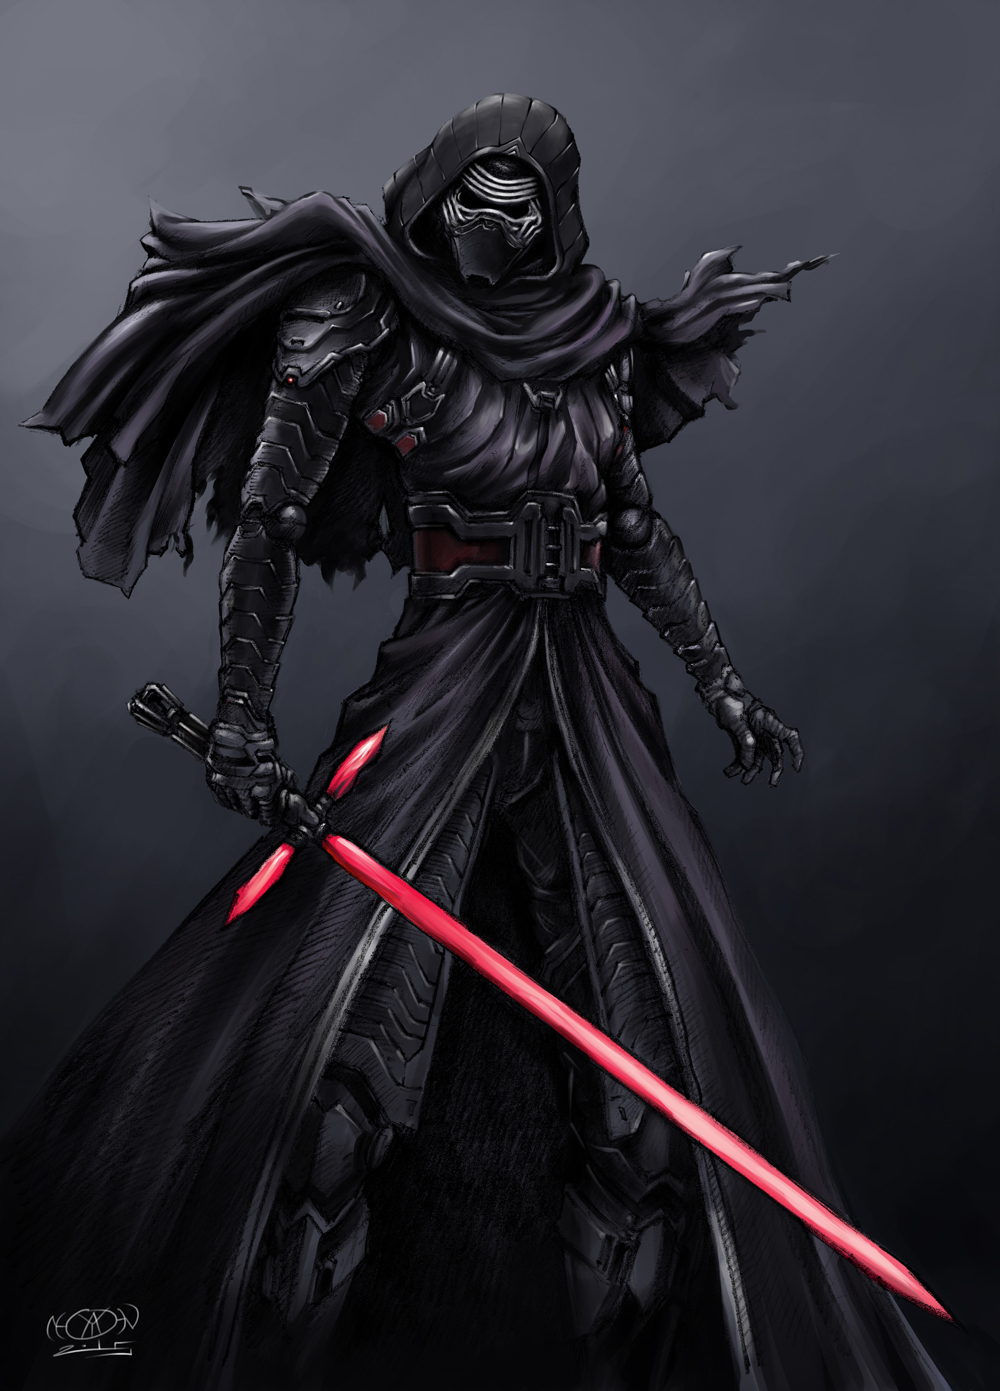 kylo ren play arts variant by darth iskander on deviantart. Black Bedroom Furniture Sets. Home Design Ideas